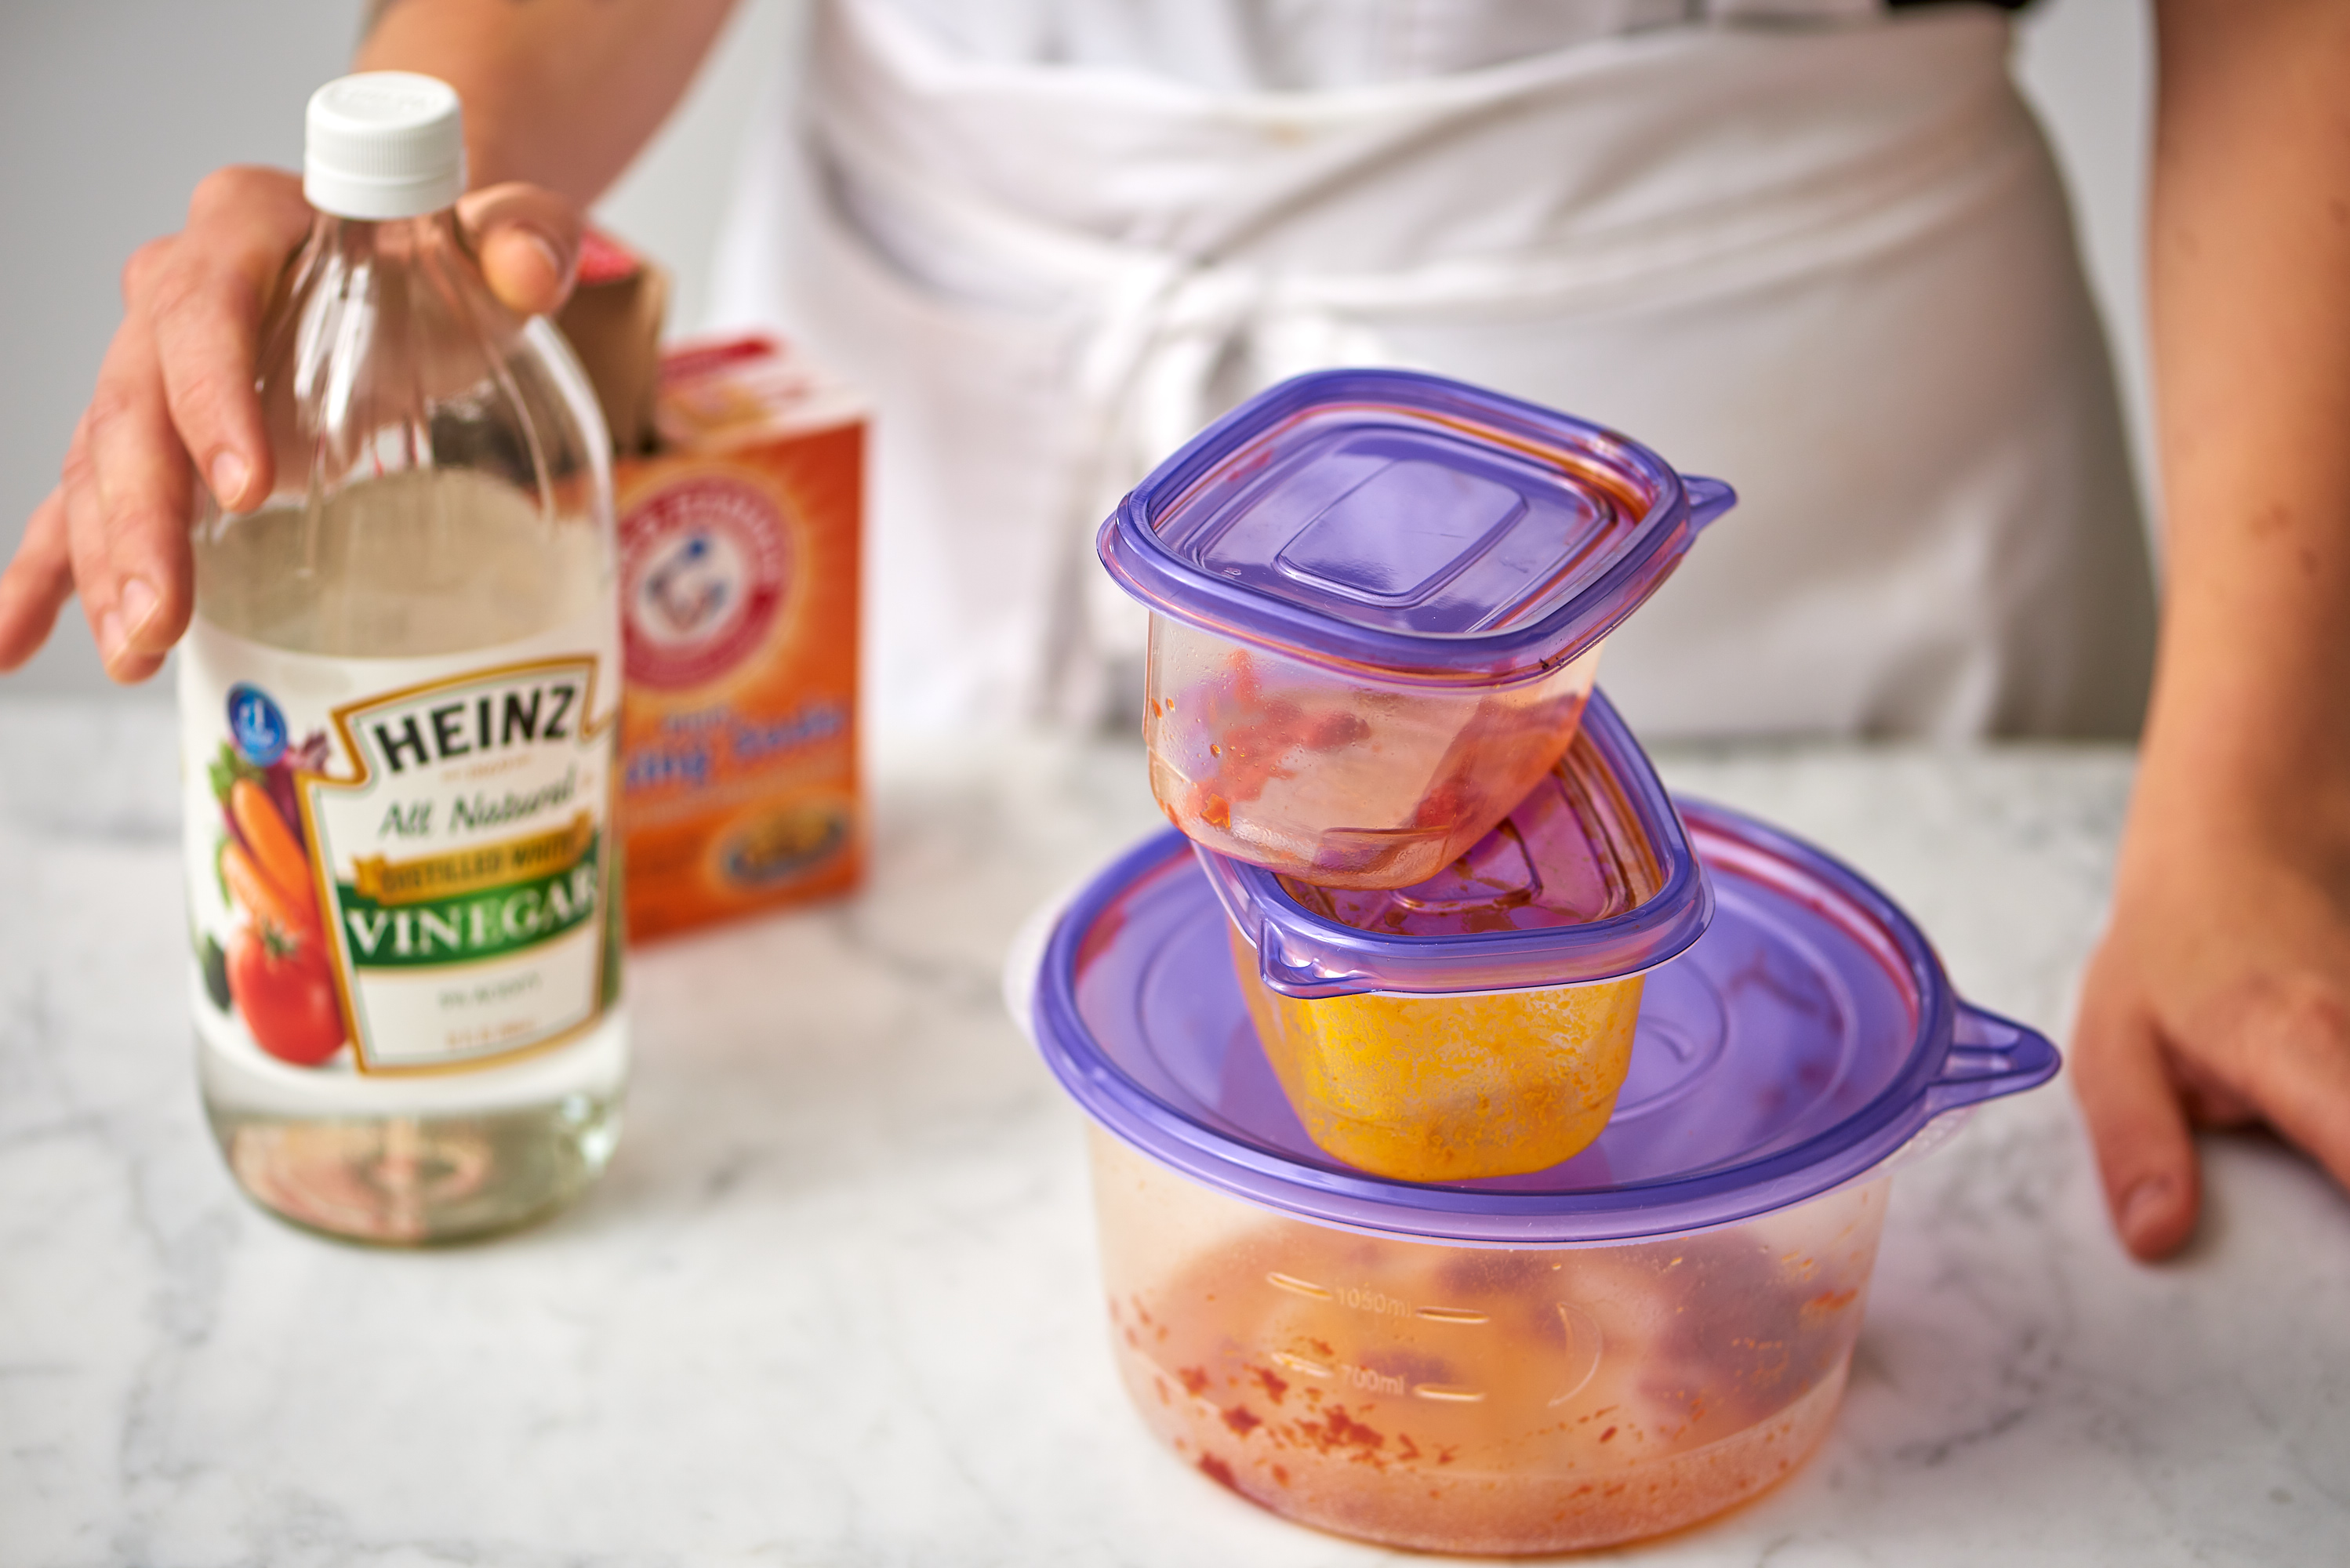 The Best Way To Get Stains Out Of Plastic Containers